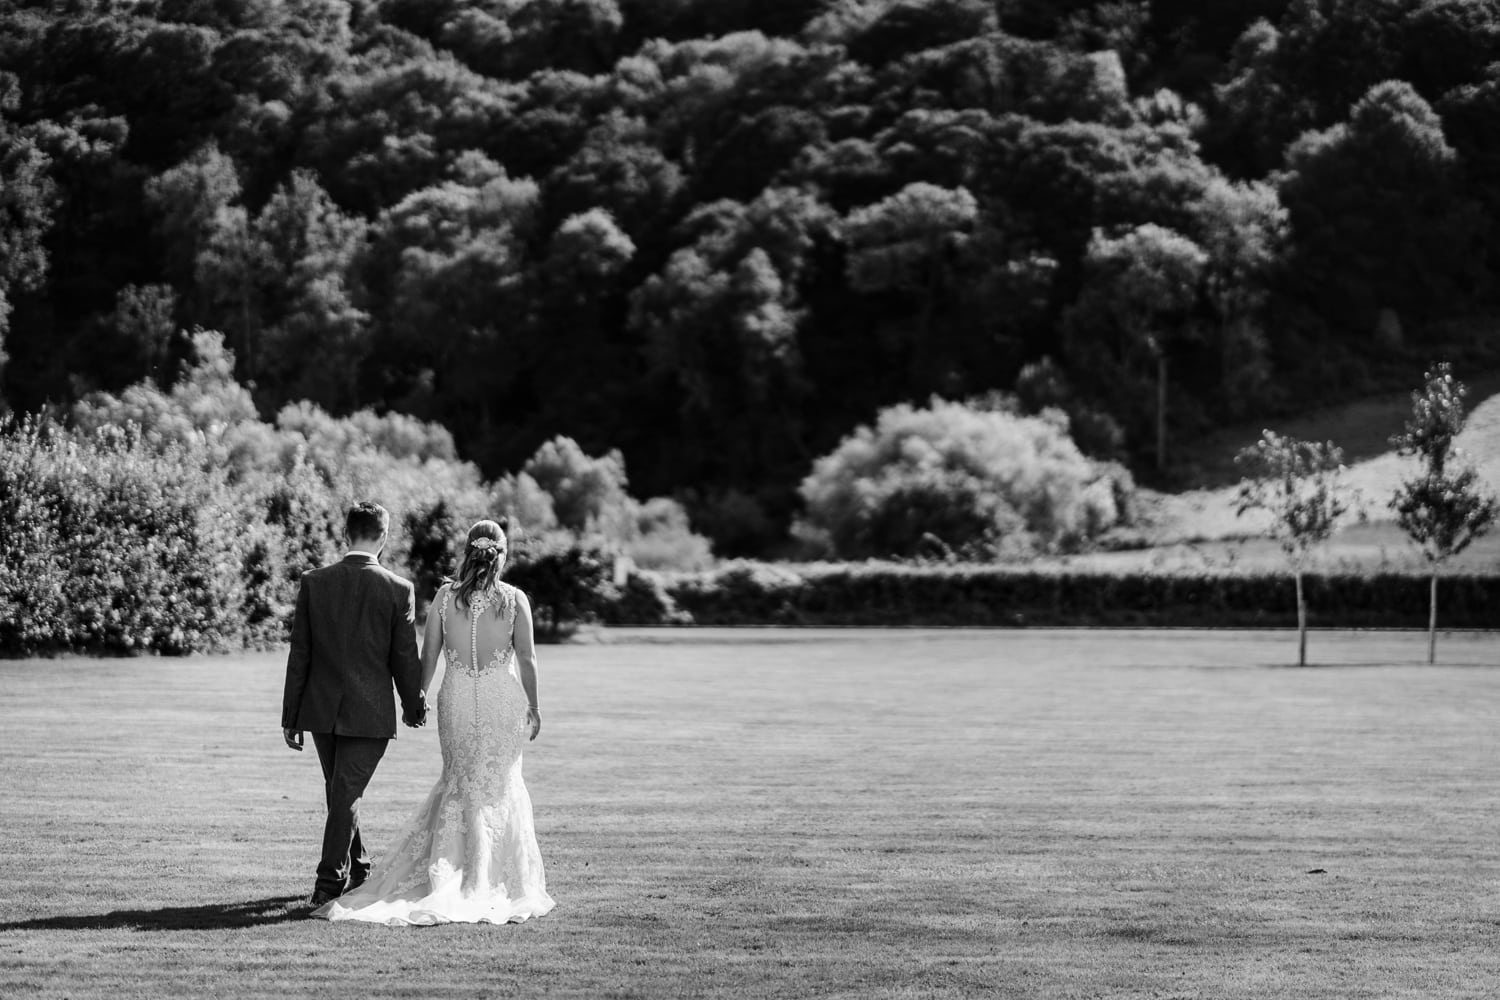 Bride and groom portraits at Herefordshire wedding venue Flanesford Priory